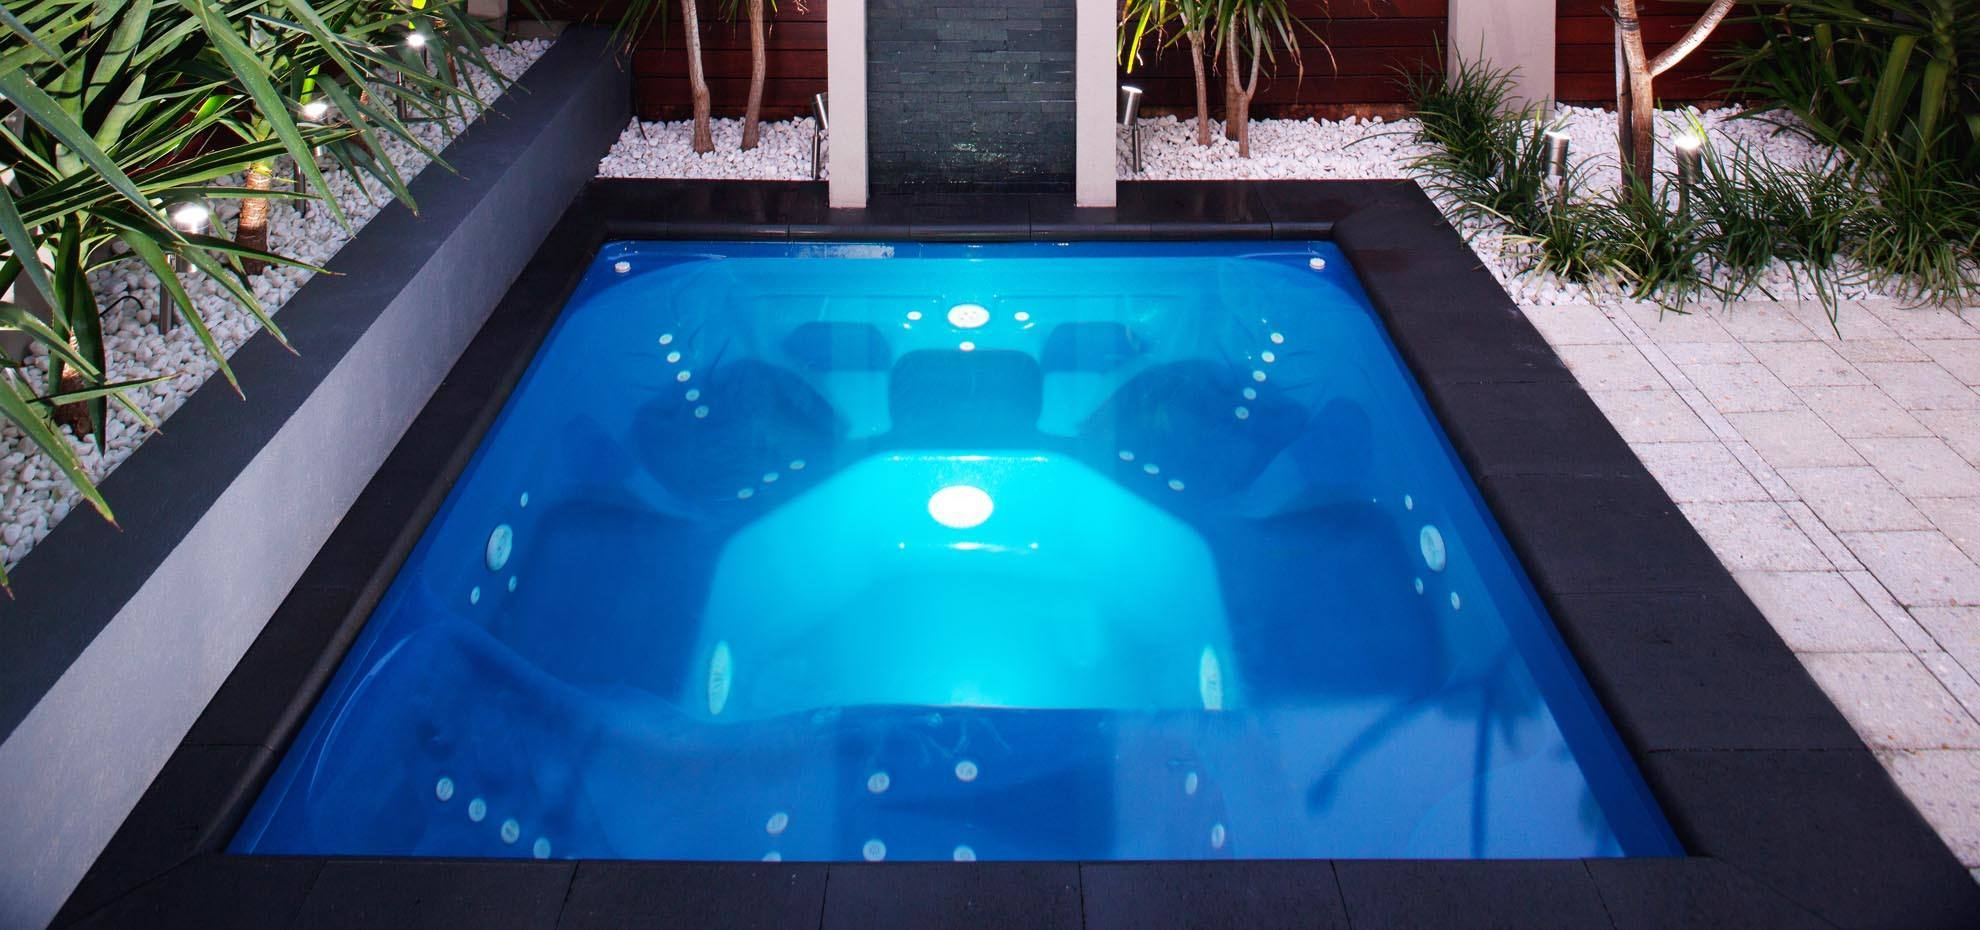 Sorrento Fibreglass pool with coping and lighting by Leisure Pools